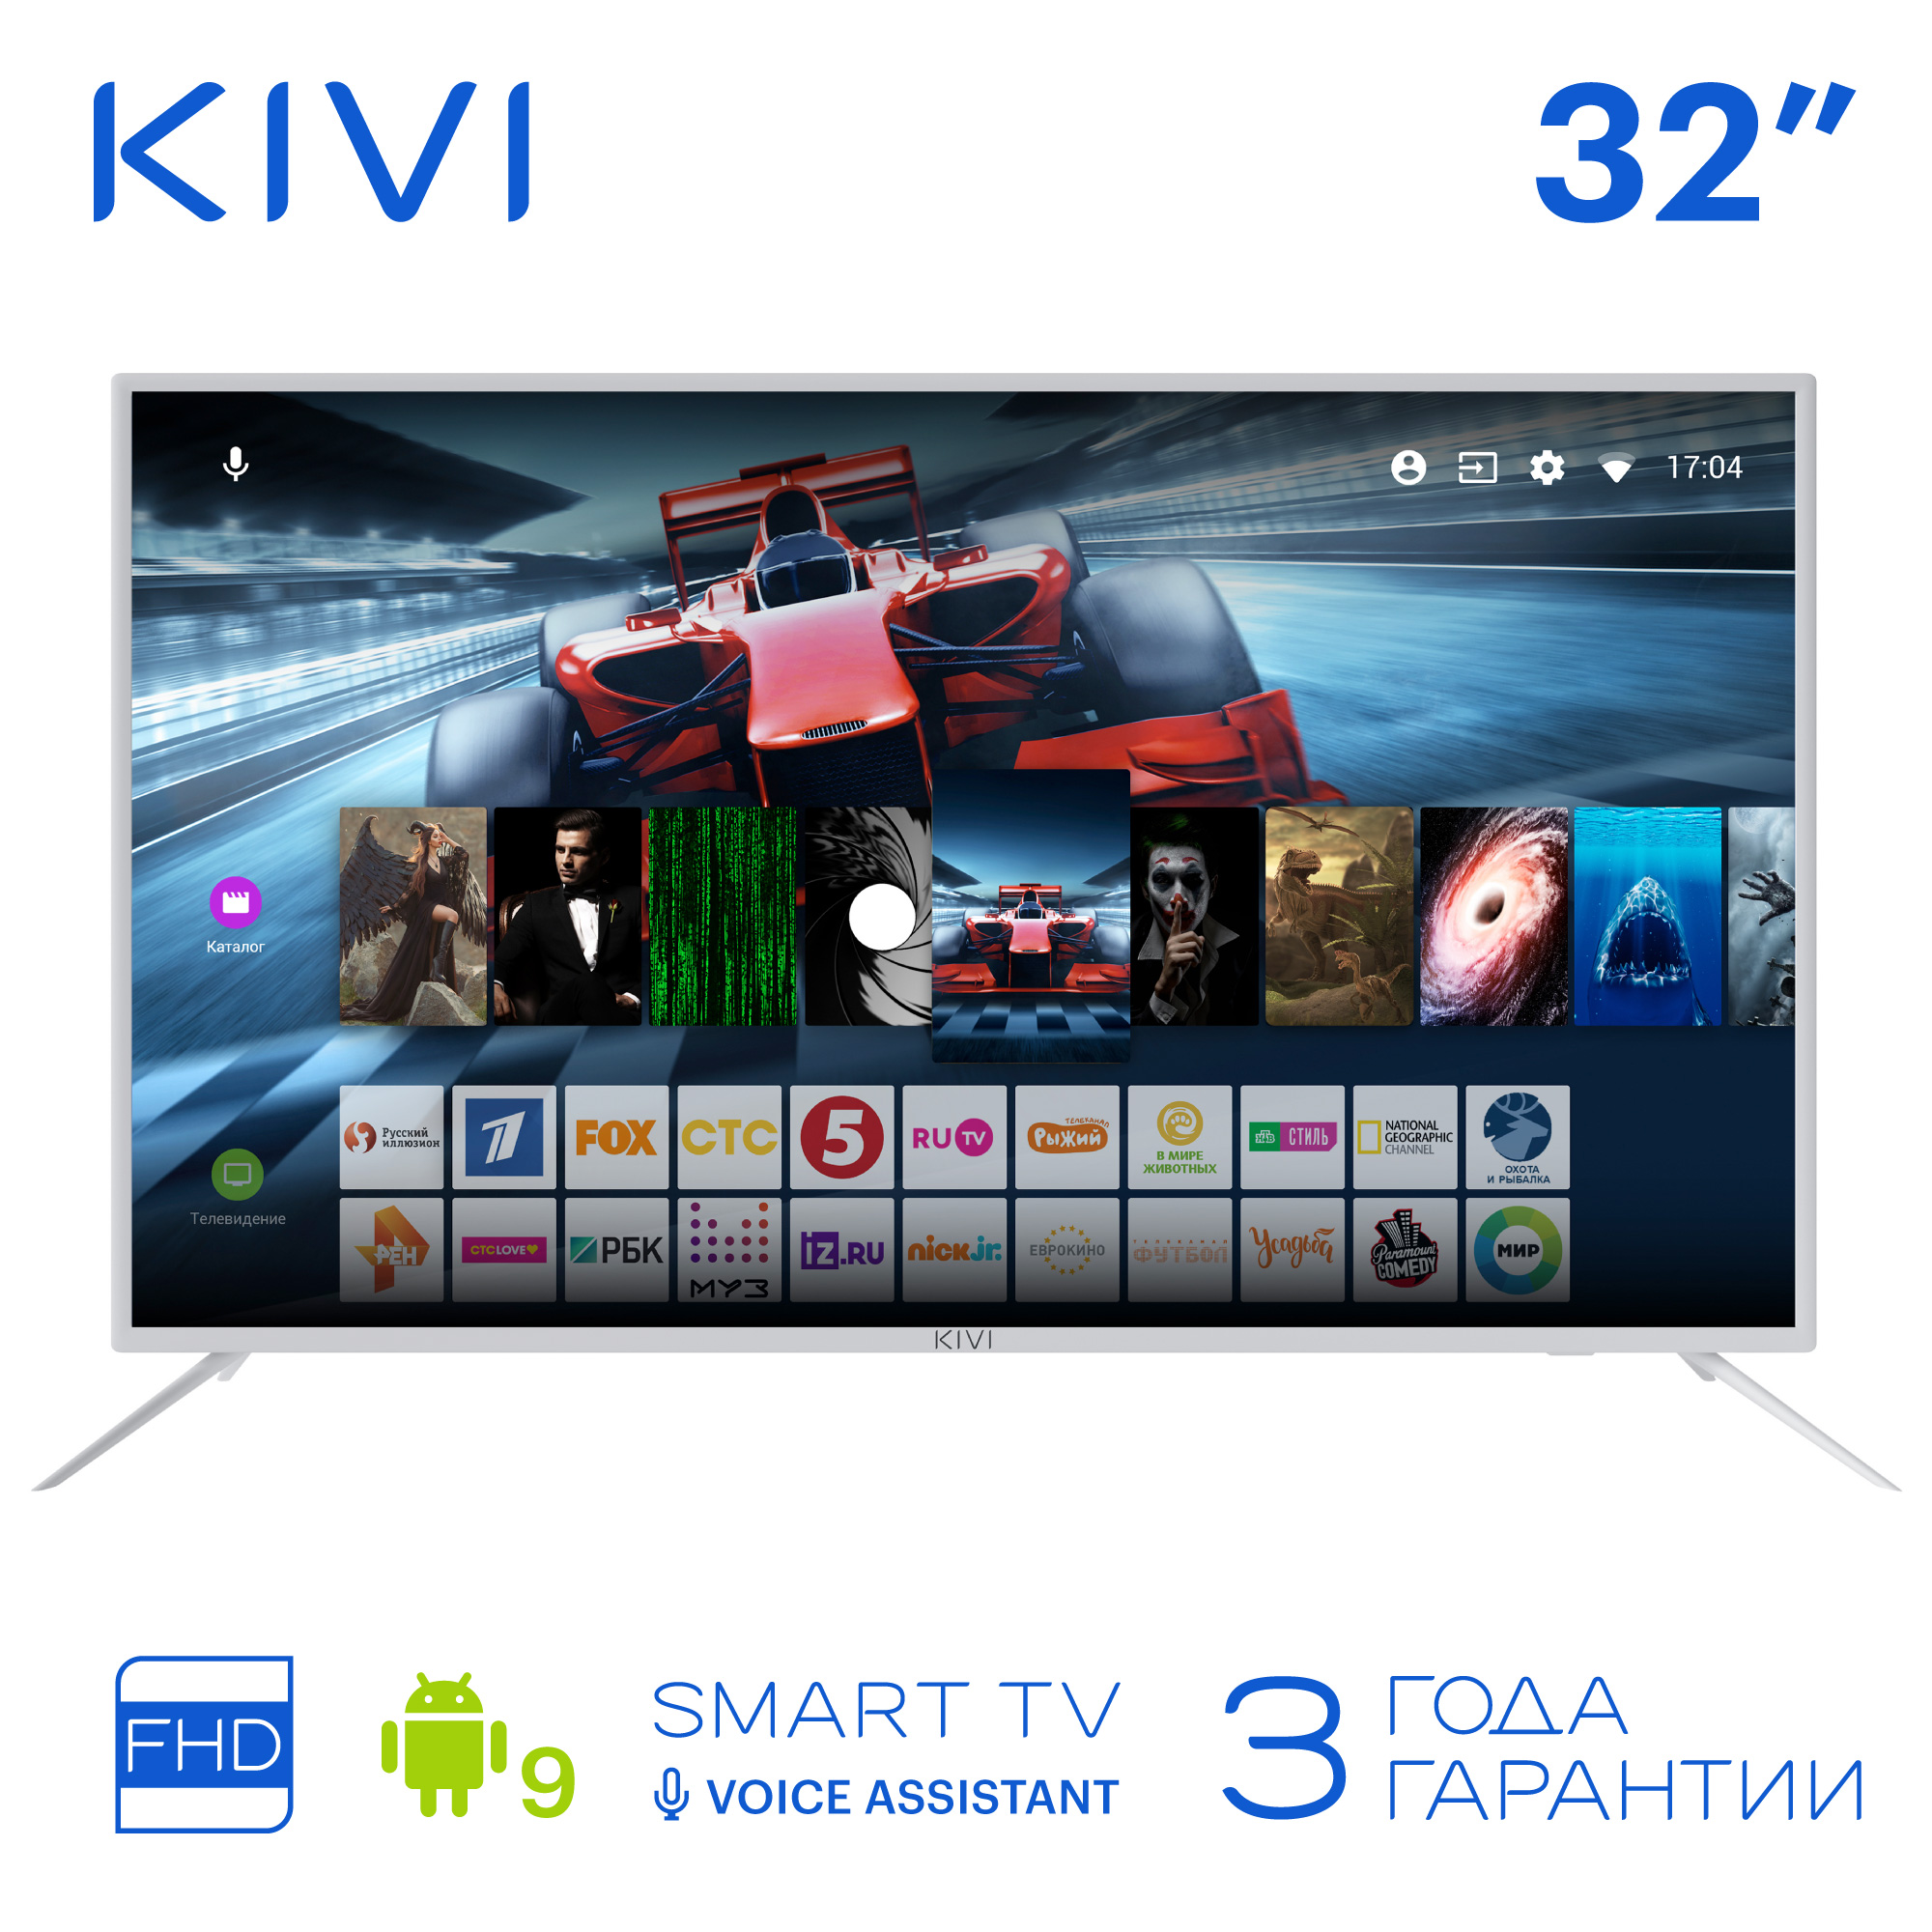 "32 ""KIVI 32F700WR Full HD Smart TV Android 9 HDR гоееееееееееееееееннннннненнненненнненнененененененененененоененененнено"